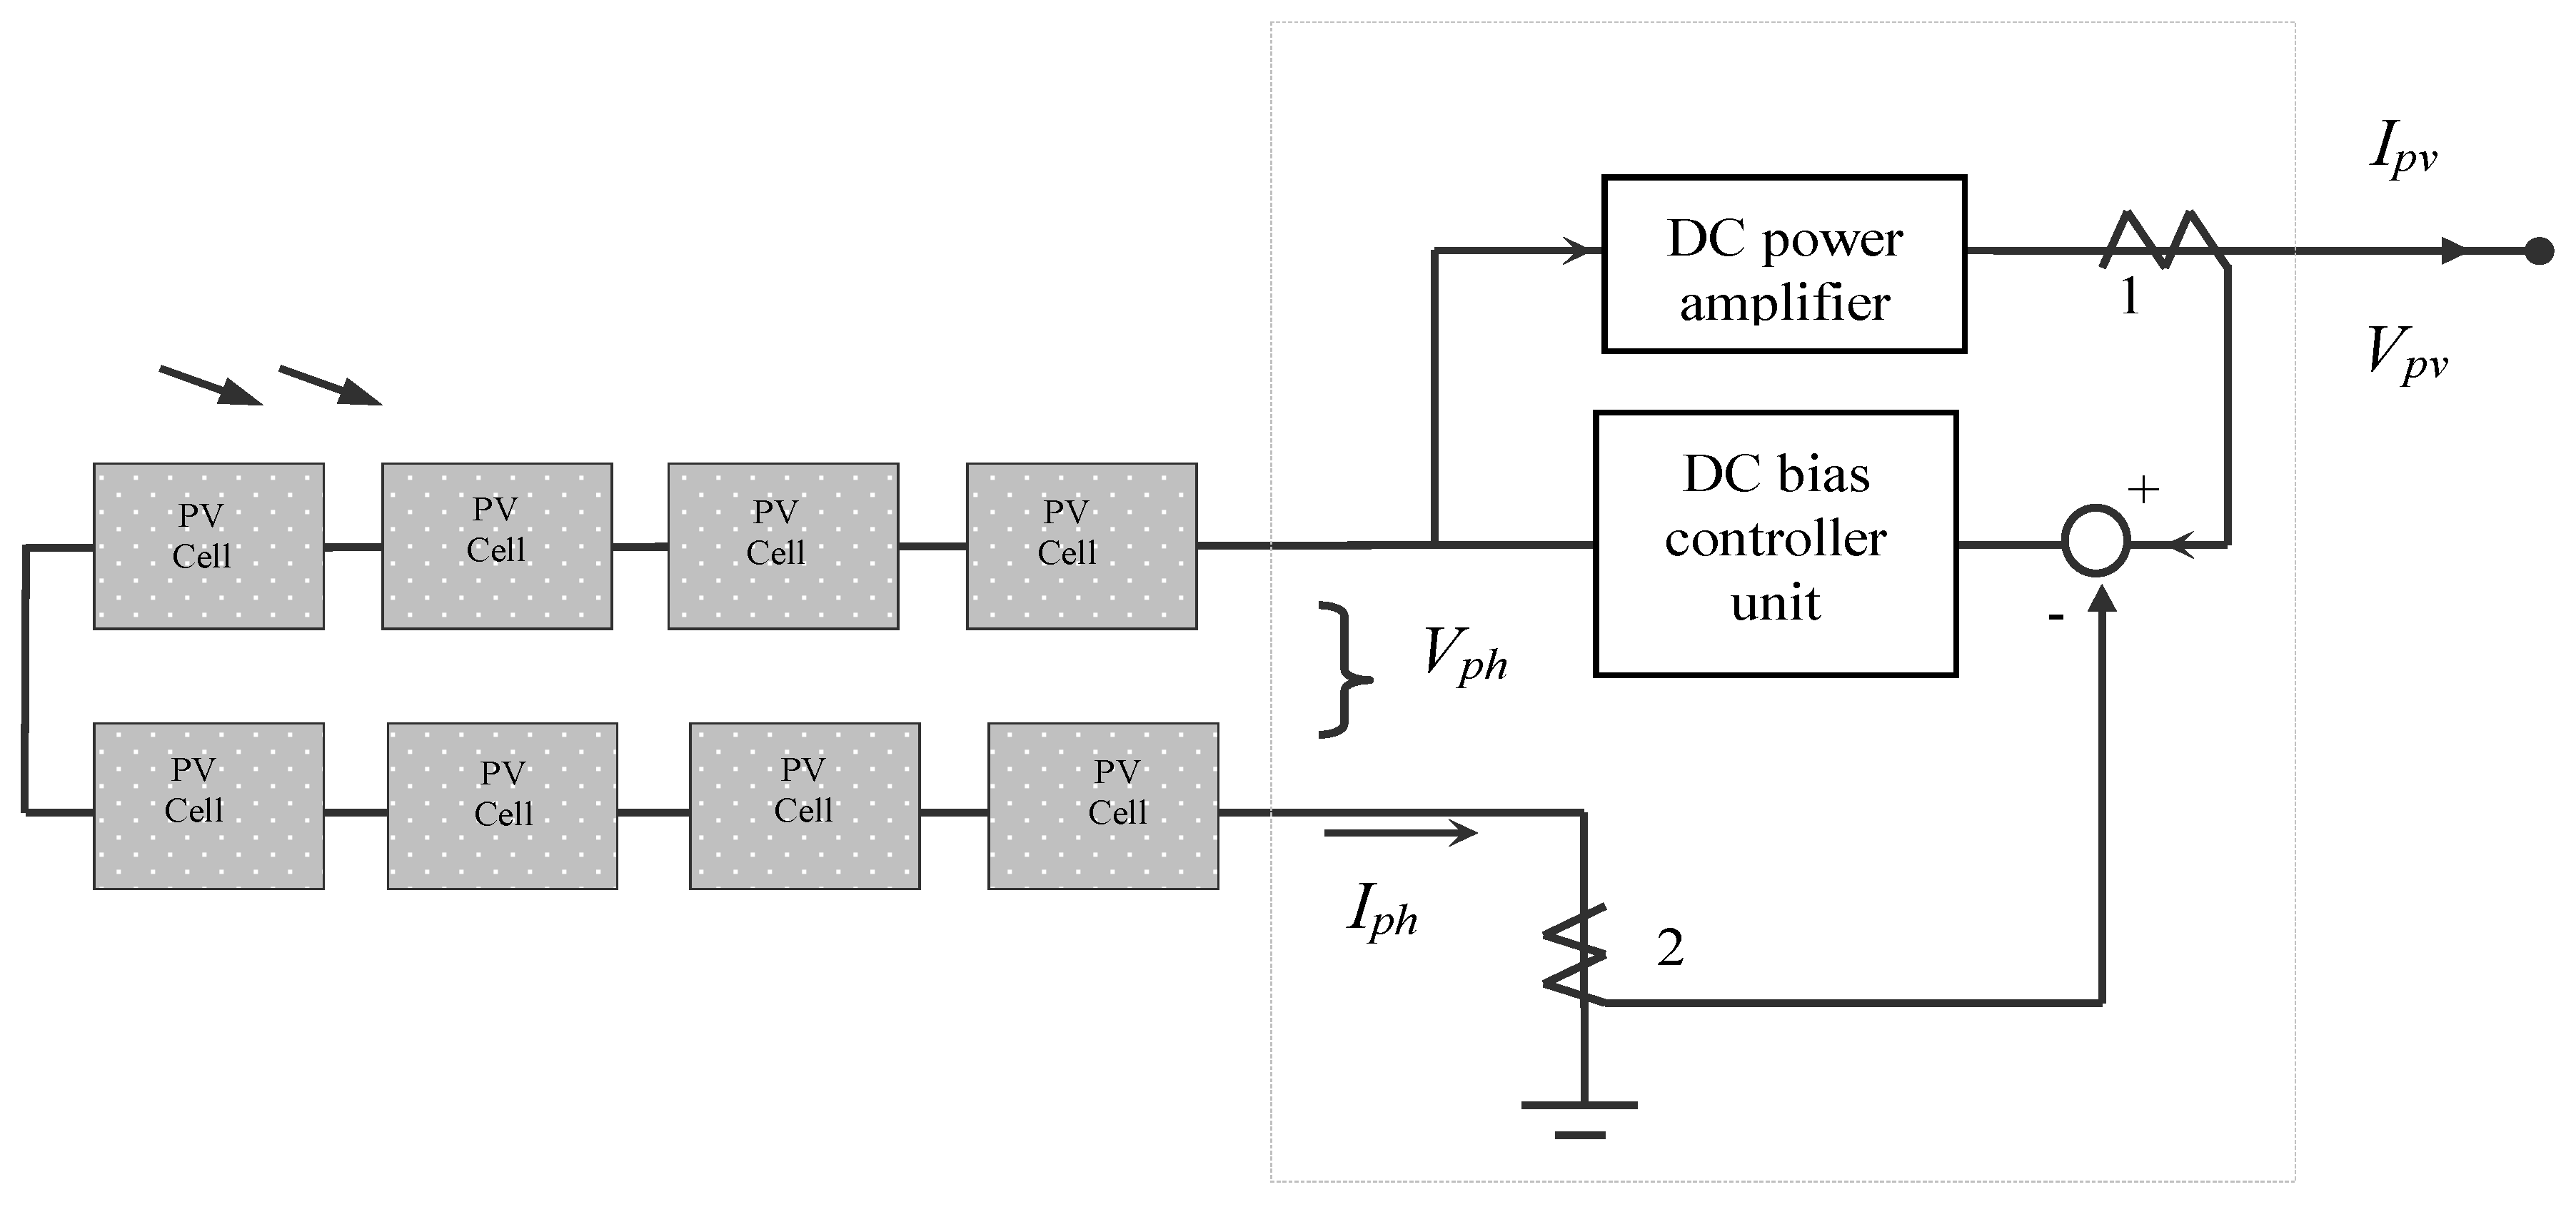 Energies Free Full Text An Emulated Pv Source Based On Circuit Diagram Also Solar Power System Block Dc Converter 10 02075 G005